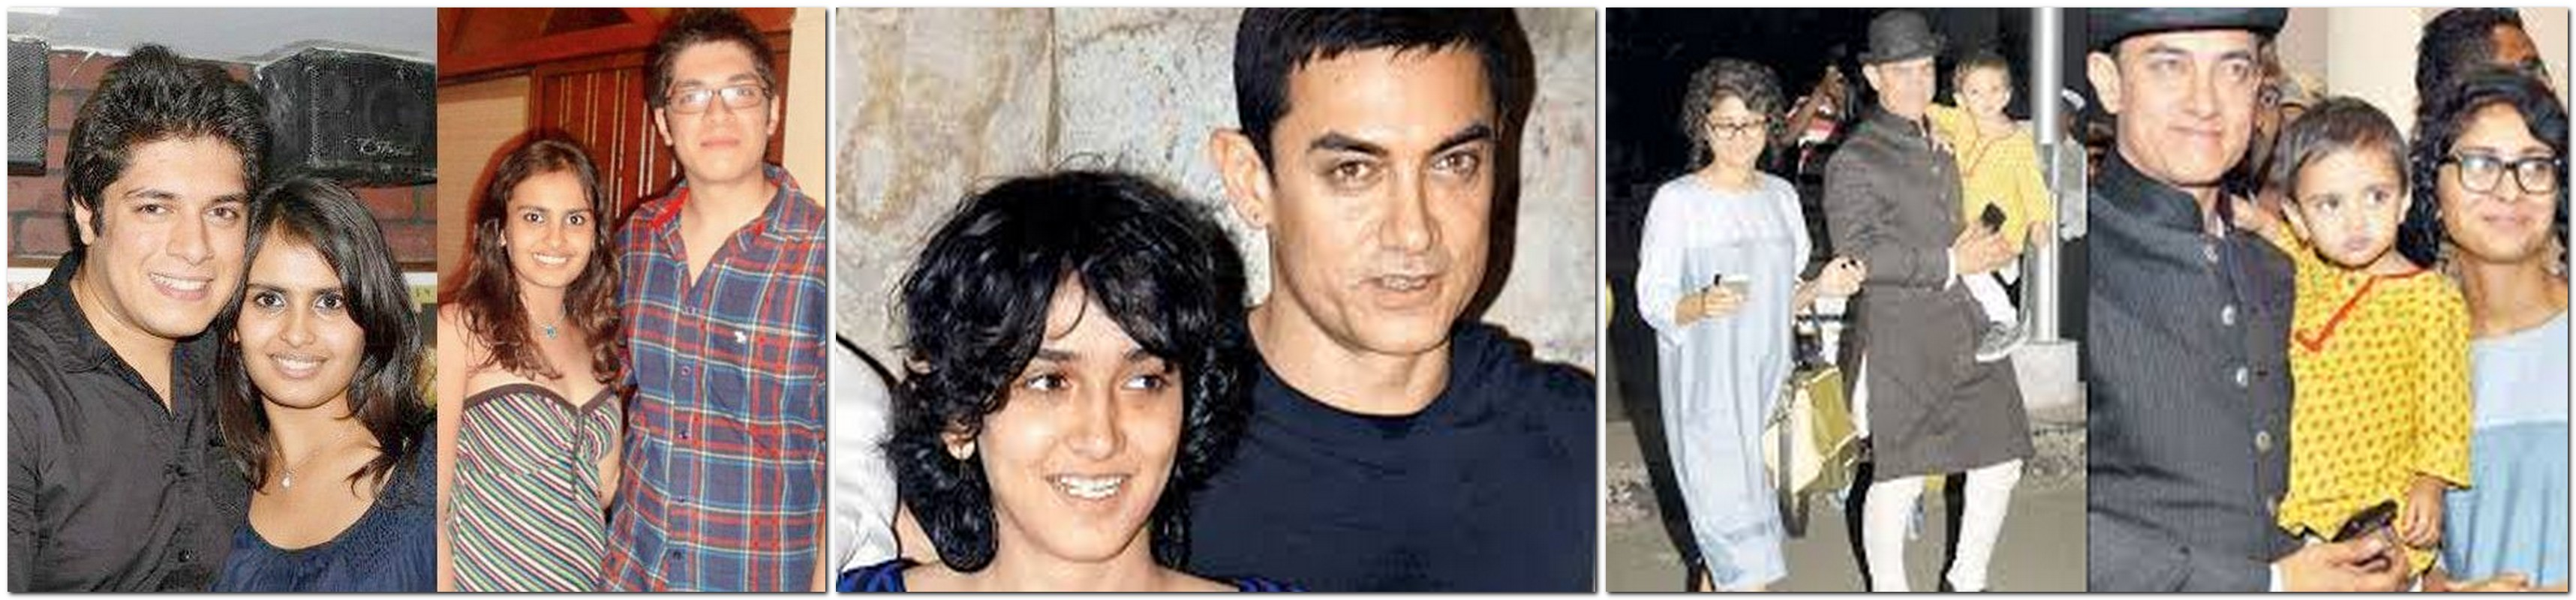 Junaid Khan (son with Reena Dutta) Ira Khan (daughter with Reena Dutta) Azad Rao Khan (son with Kiran Rao)